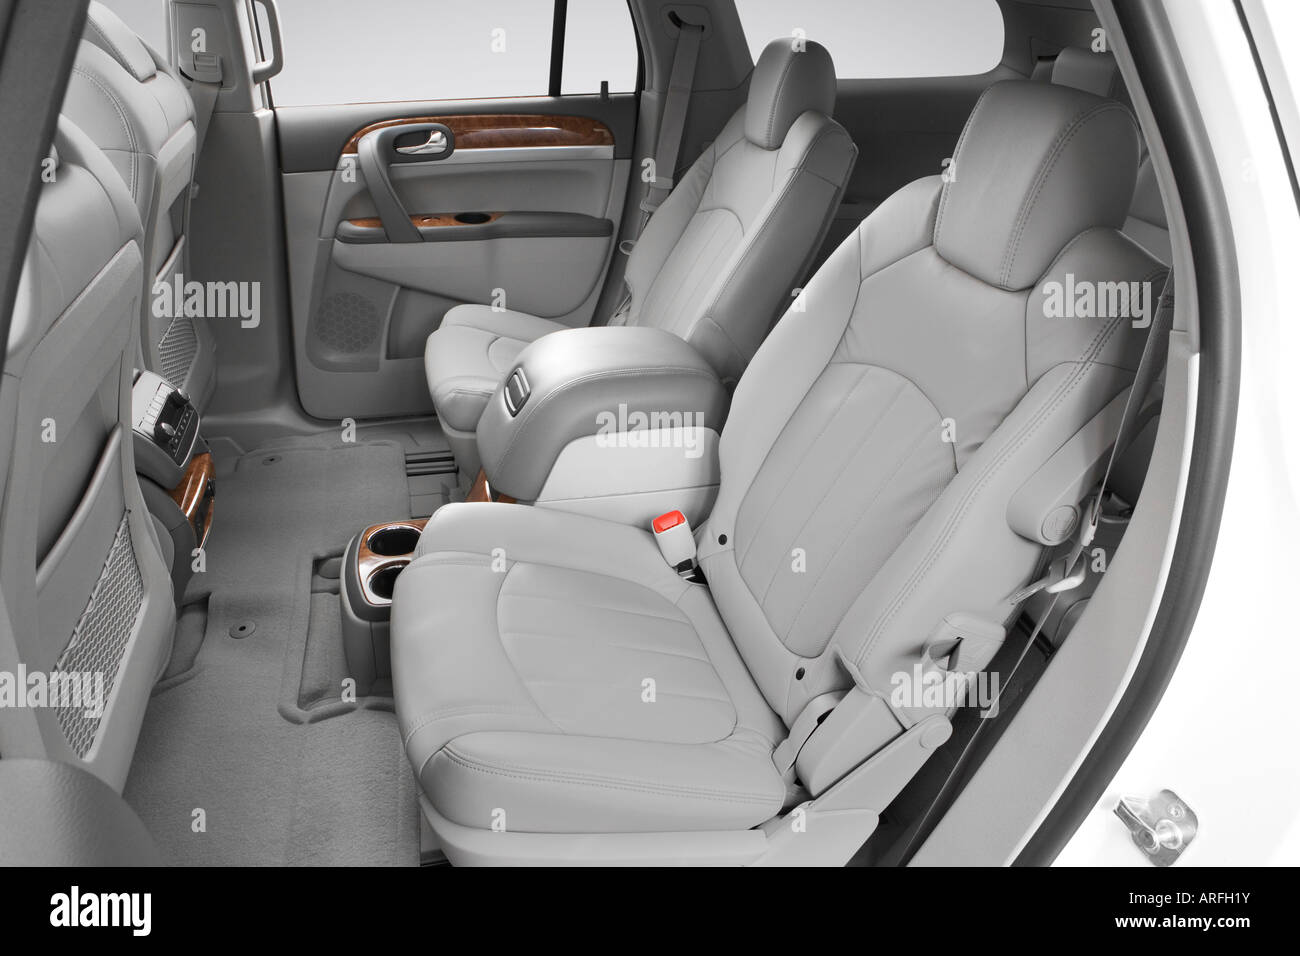 Buick Enclave Seating Capacity >> 2008 Buick Enclave Cxl In White Rear Seats Stock Photo